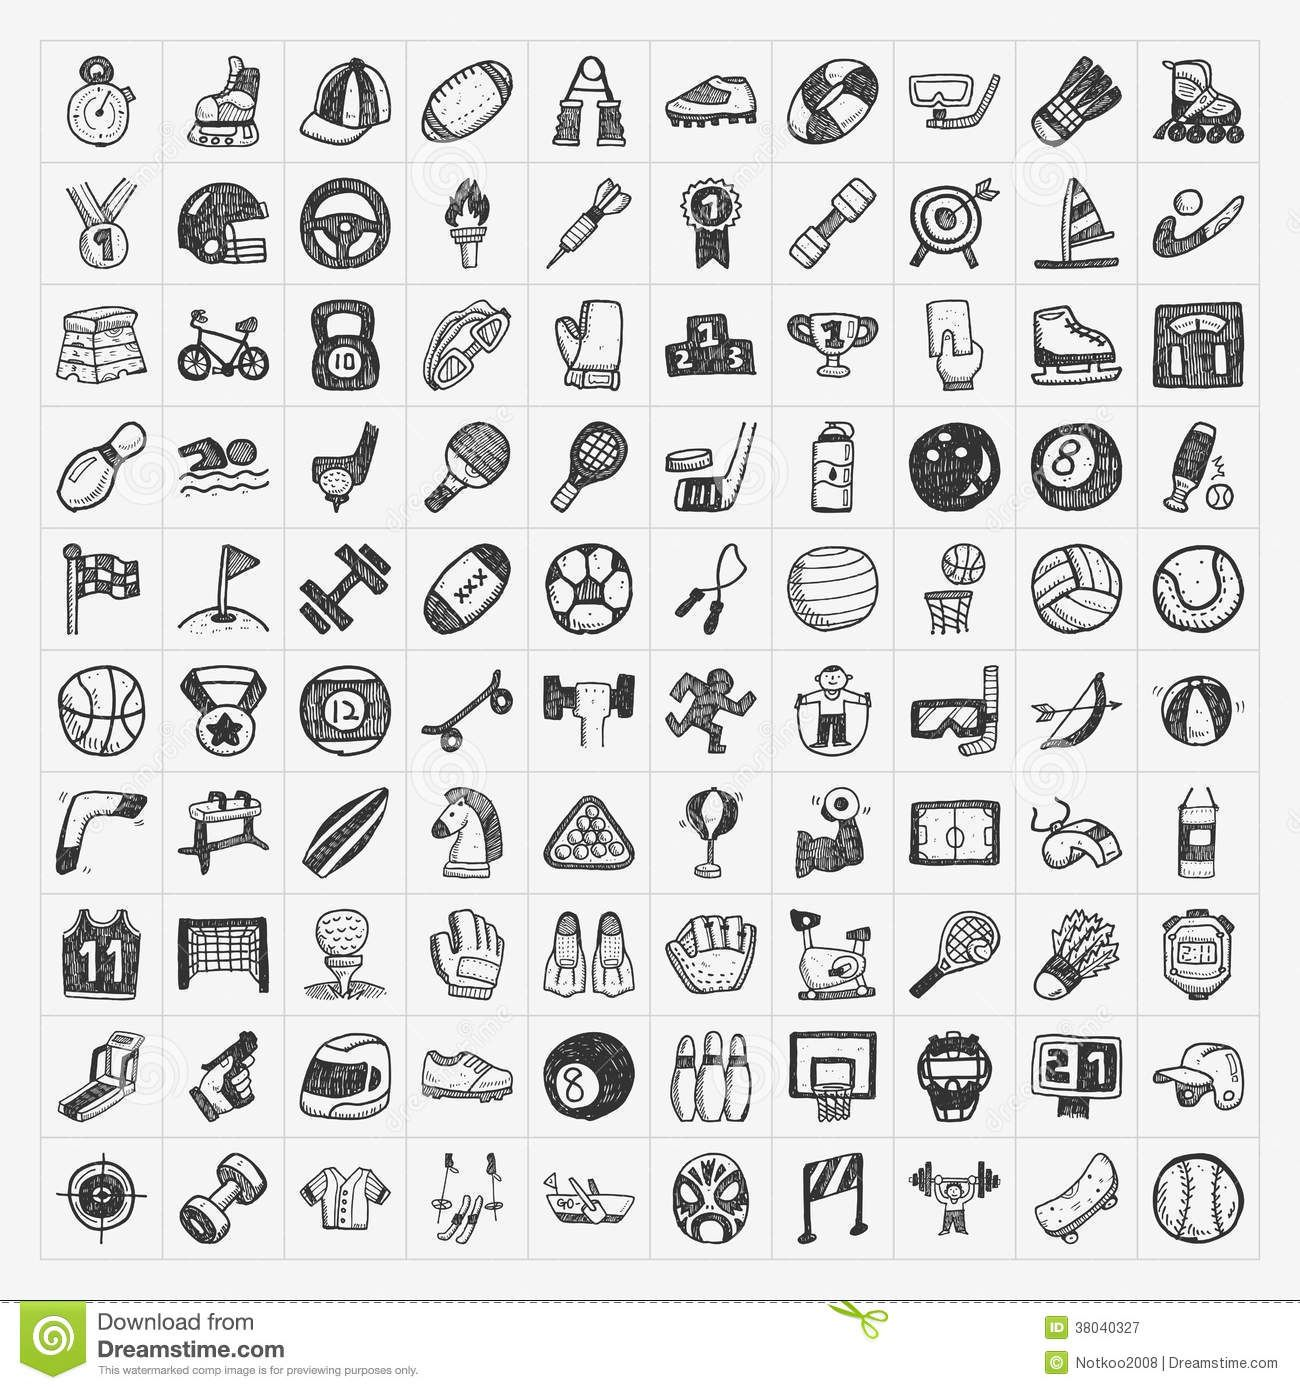 Doodle sport icons Hand drawn icons, How to draw hands